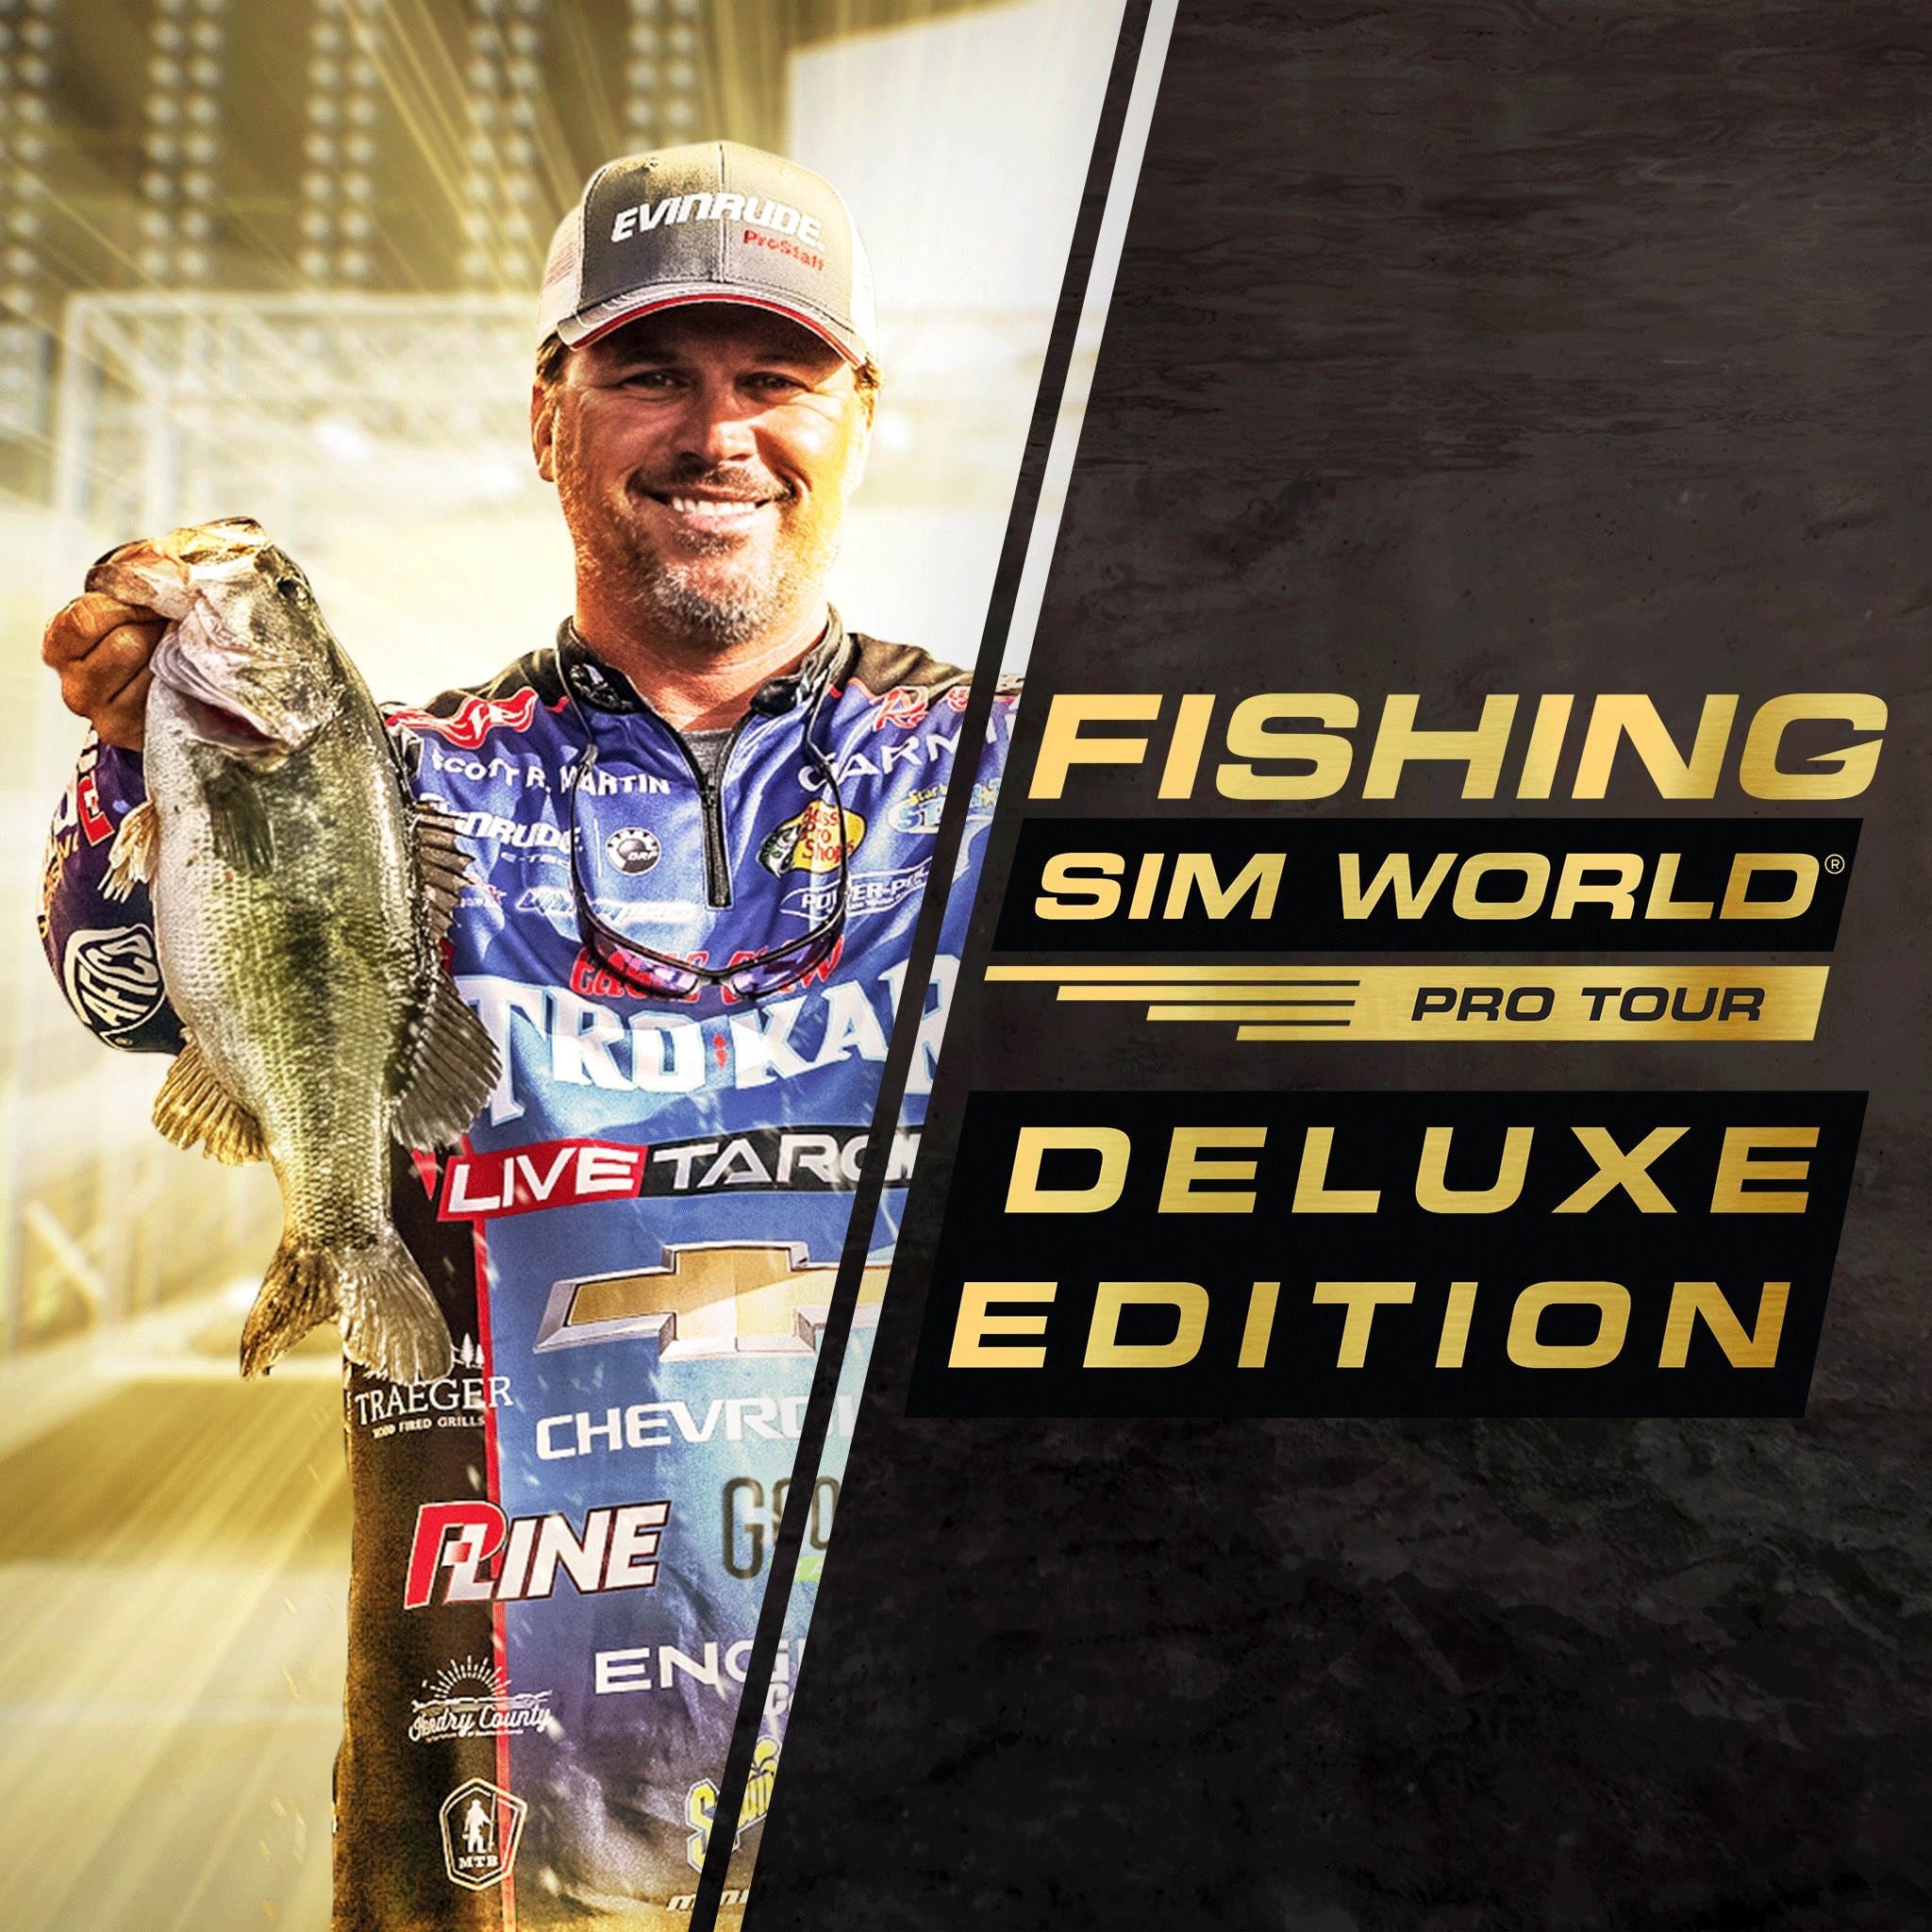 Fishing Sim World®: Pro Tour Deluxe Edition